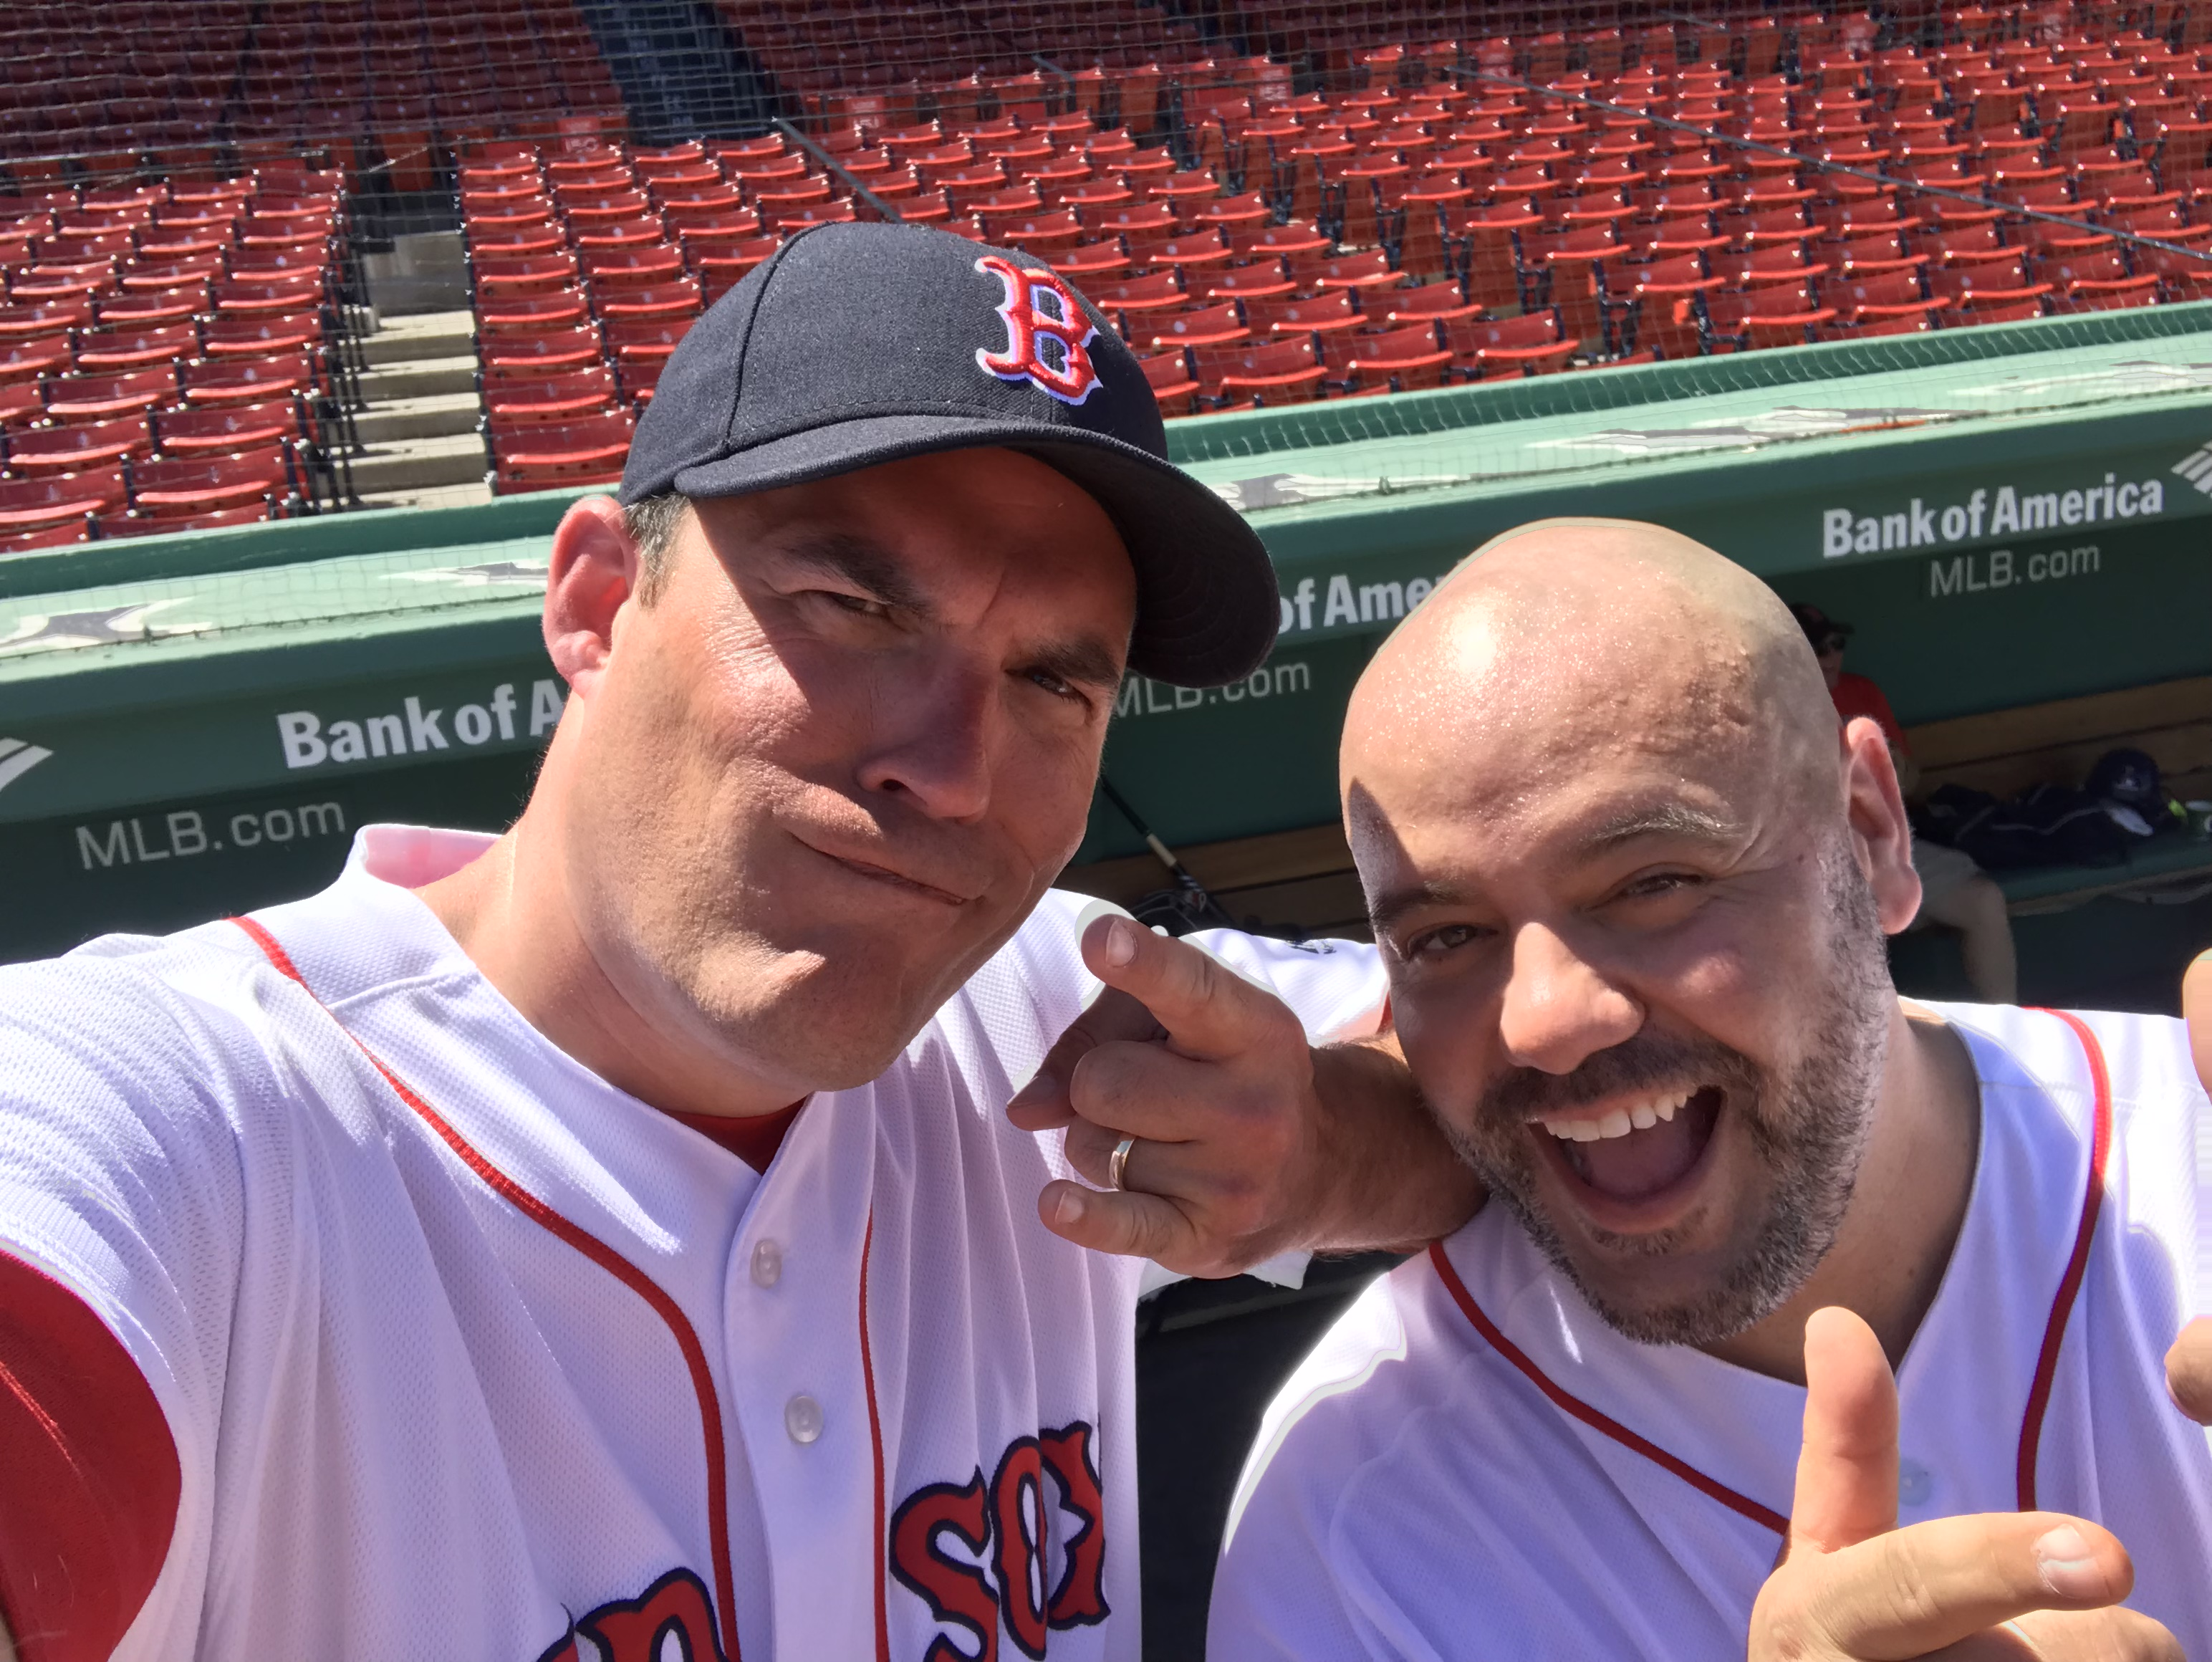 Playing At Fenway Park And Sharing A Catch At Dodger Stadium